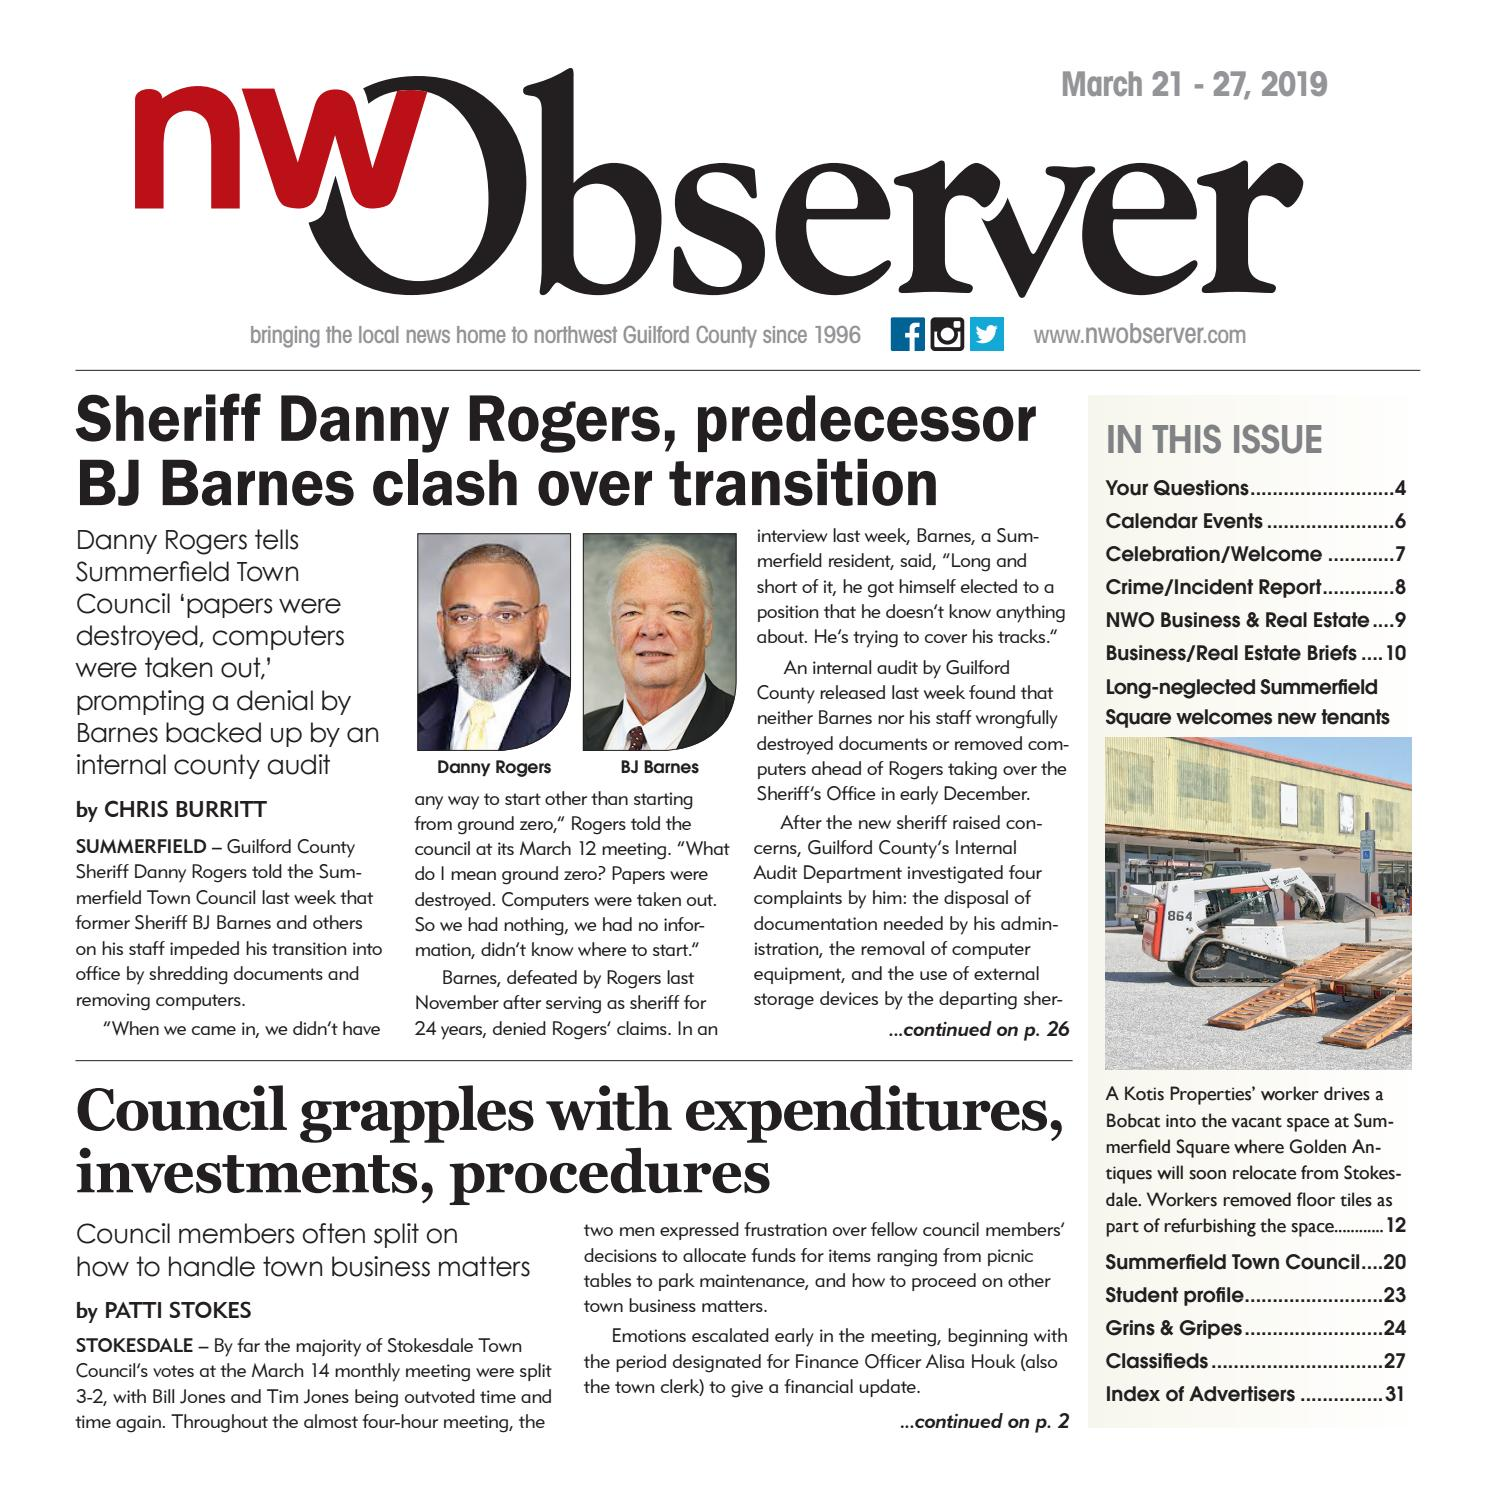 Northwest Observer I March 21 - March 27, 2019 by